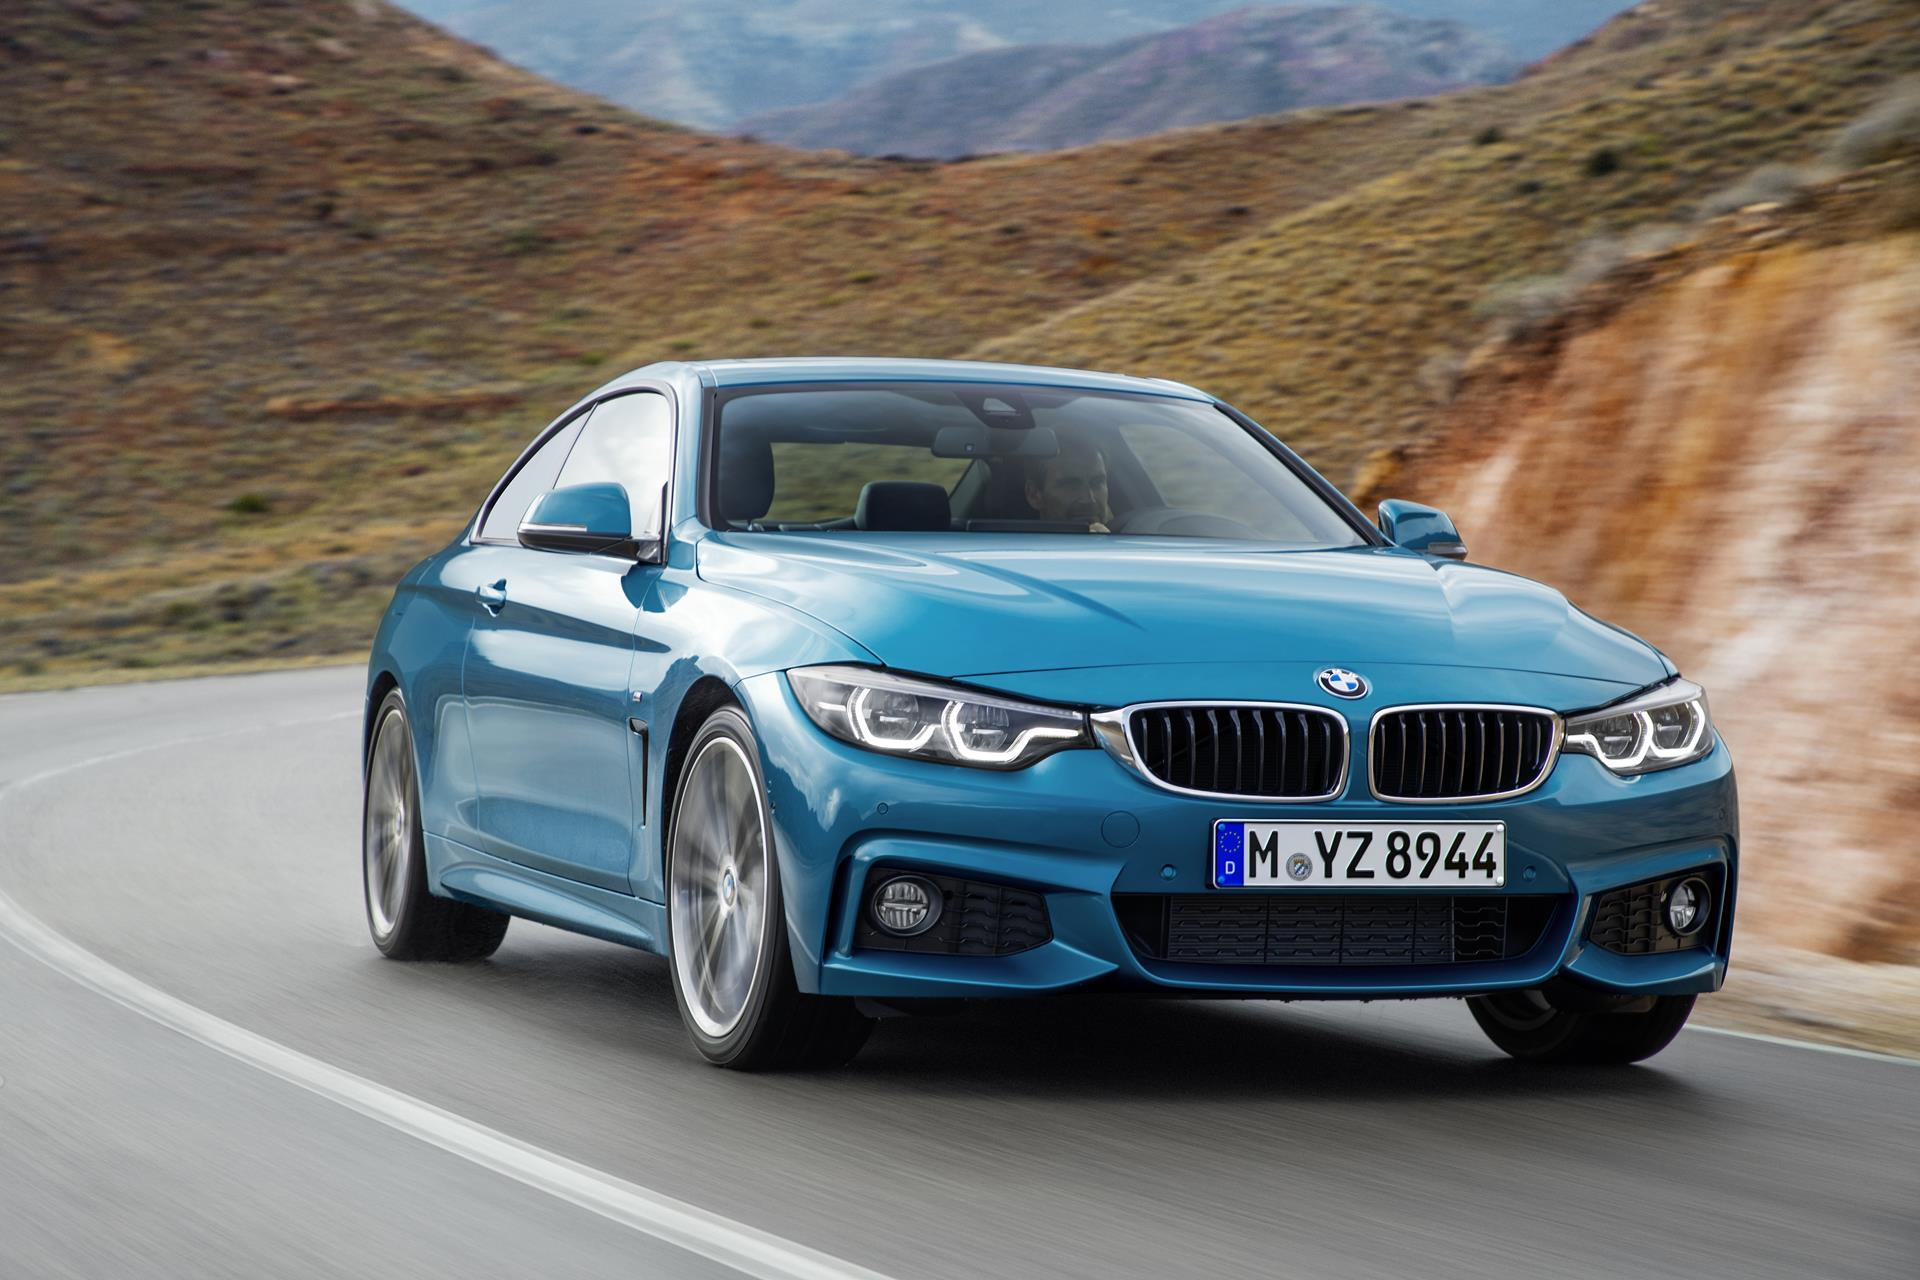 Cars by BMW, BMW Images, Wallpaper, Pricing, and Information